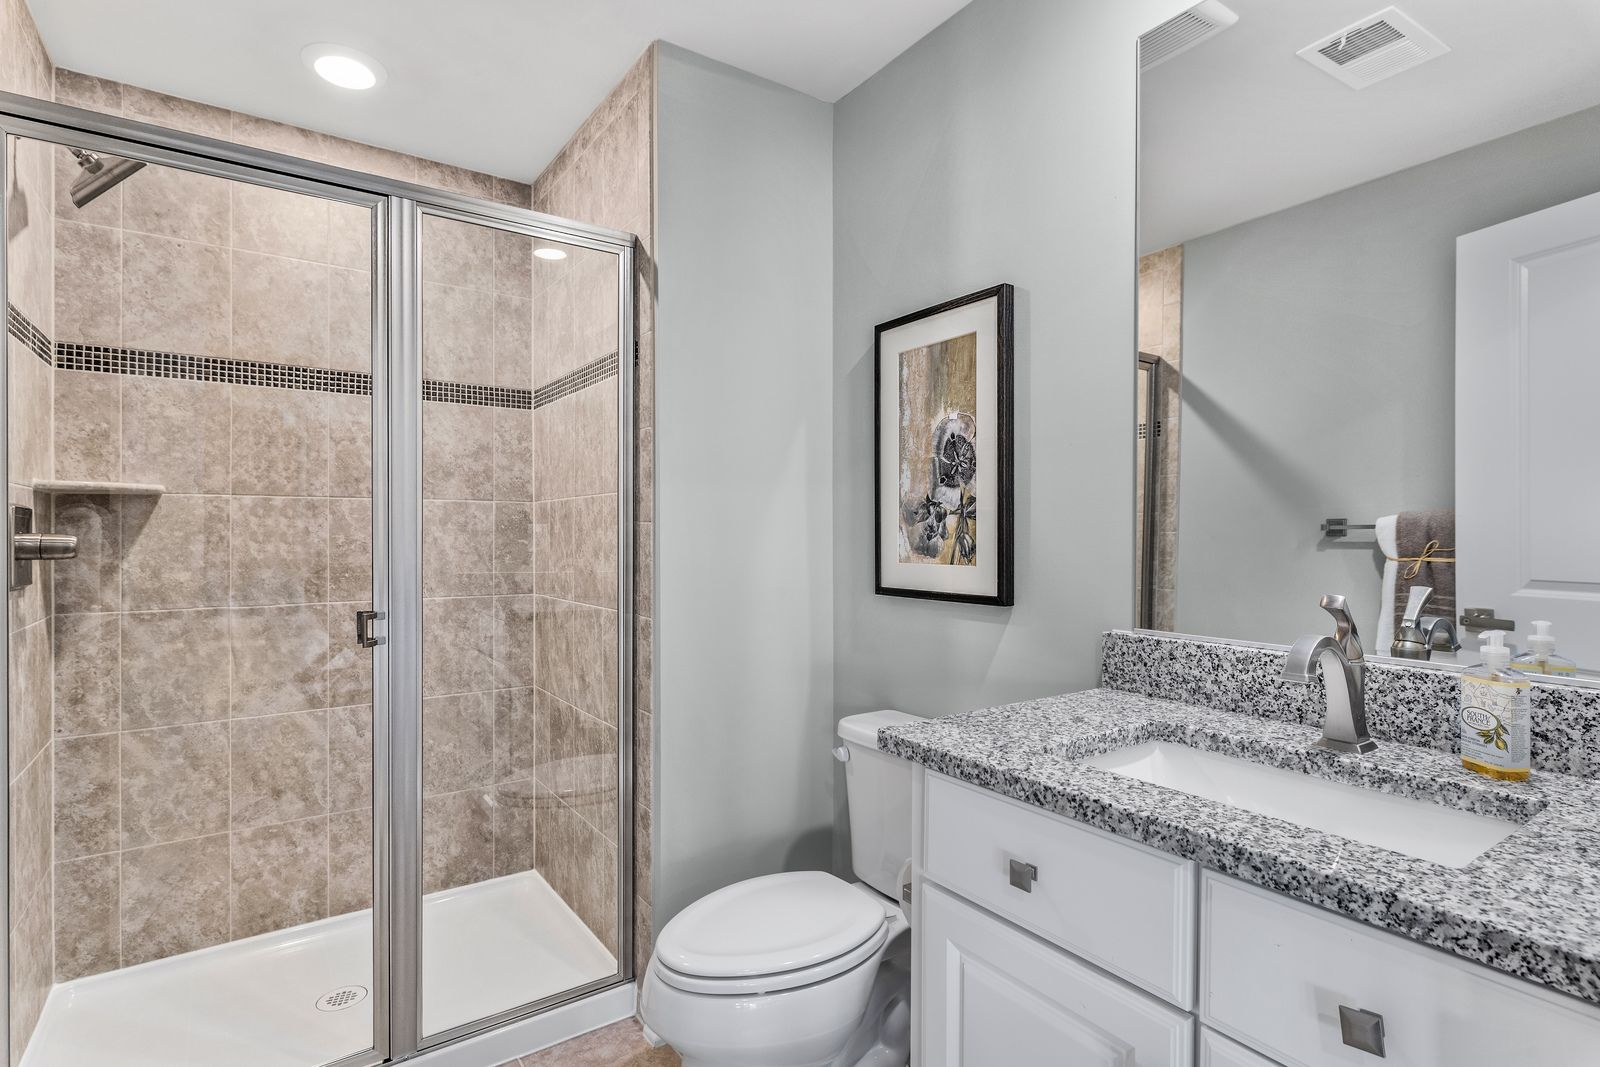 Bathroom featured in the Marymount By NVHomes in Philadelphia, PA